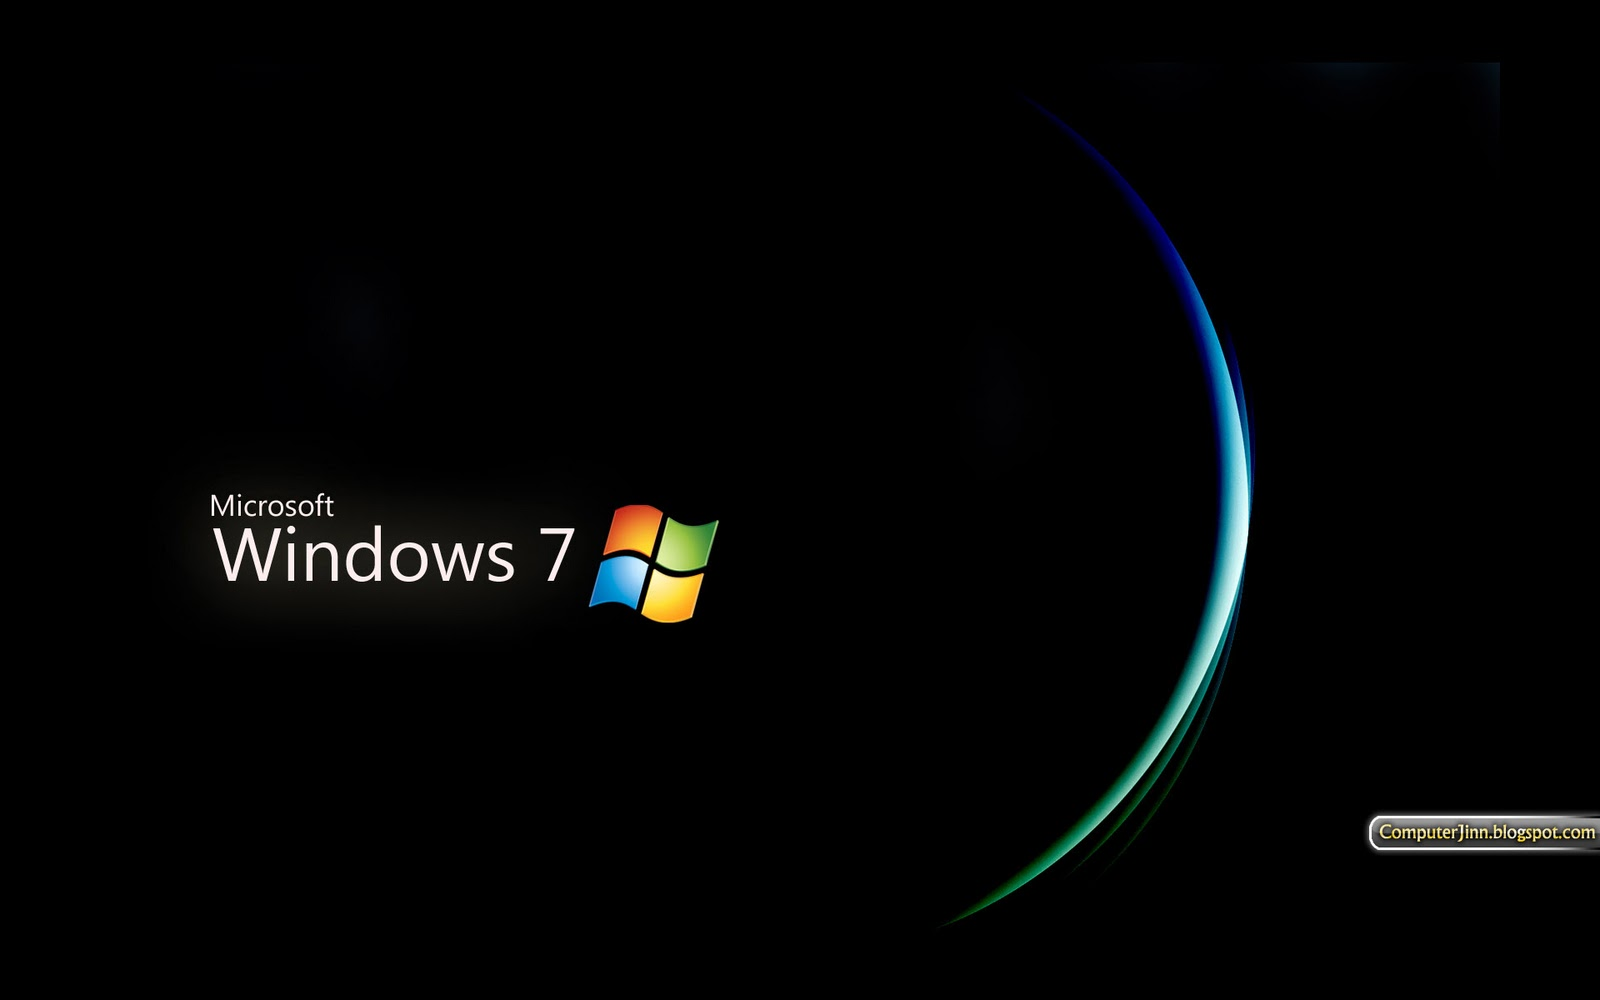 Windows 7 Black and Dark HD Wallpapers Wallpapers pictures images 1600x1000